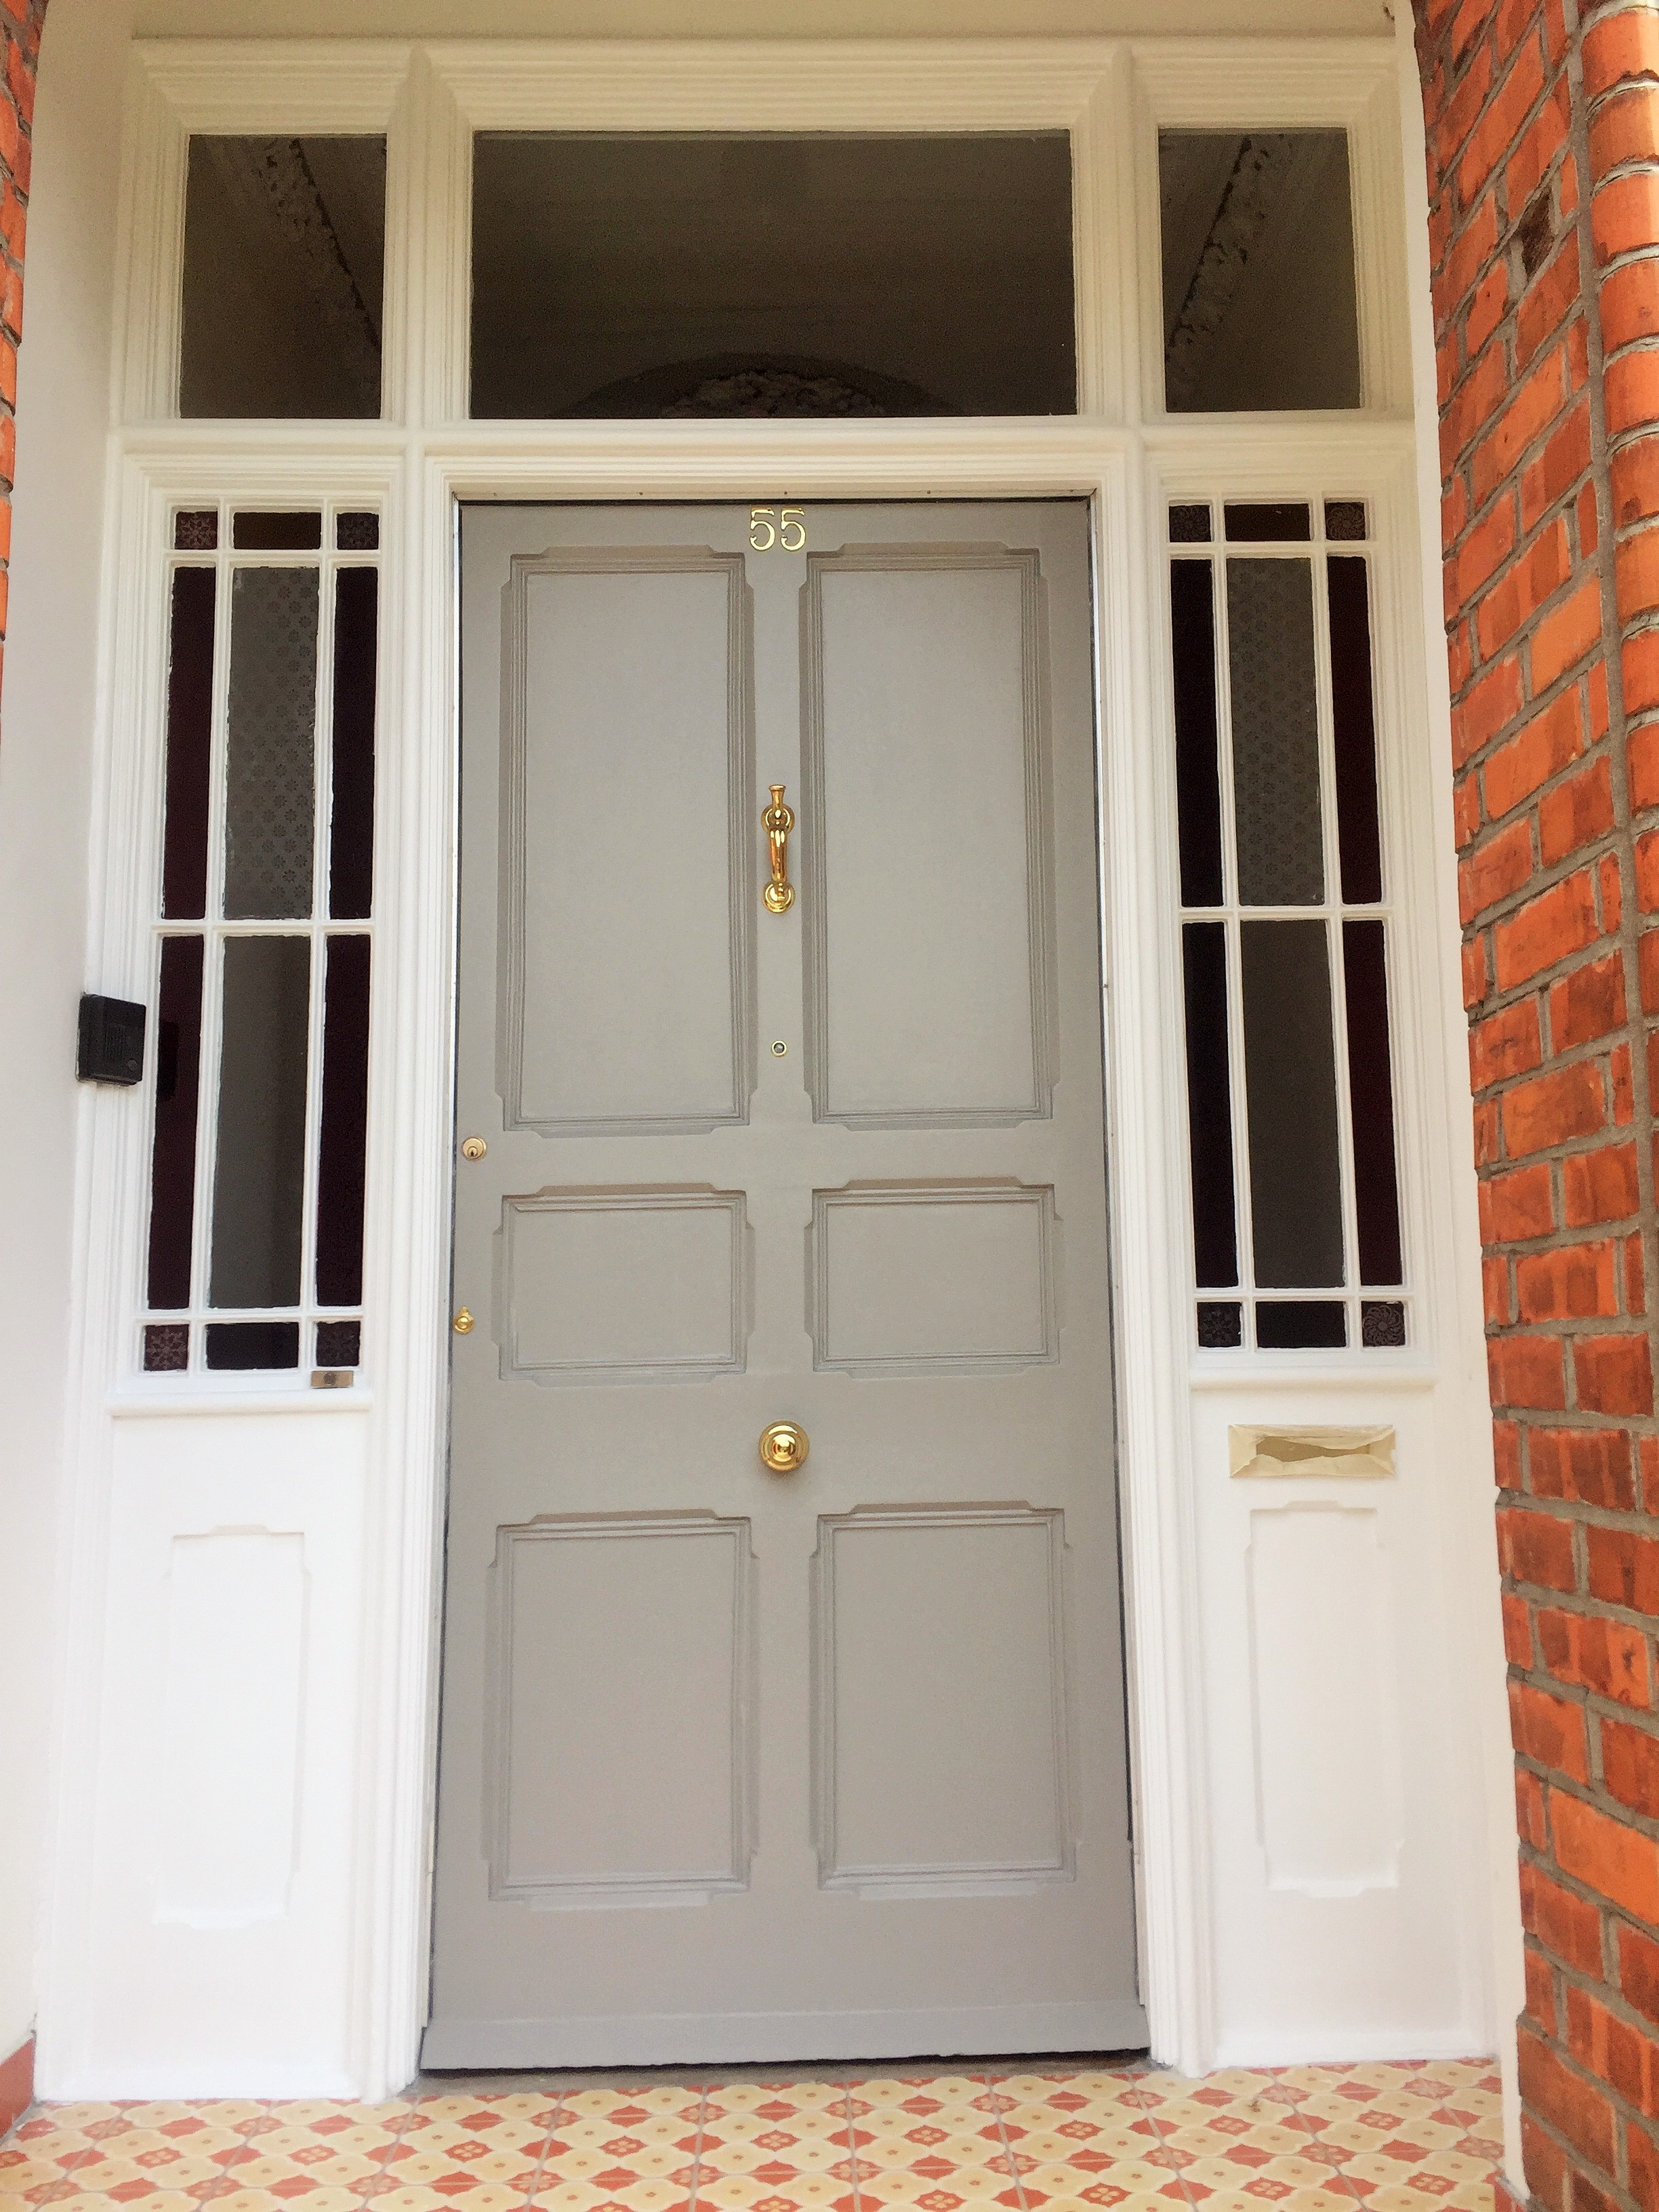 Front door painting and period door restoration by Impressions Painters and Decorators in Dublin